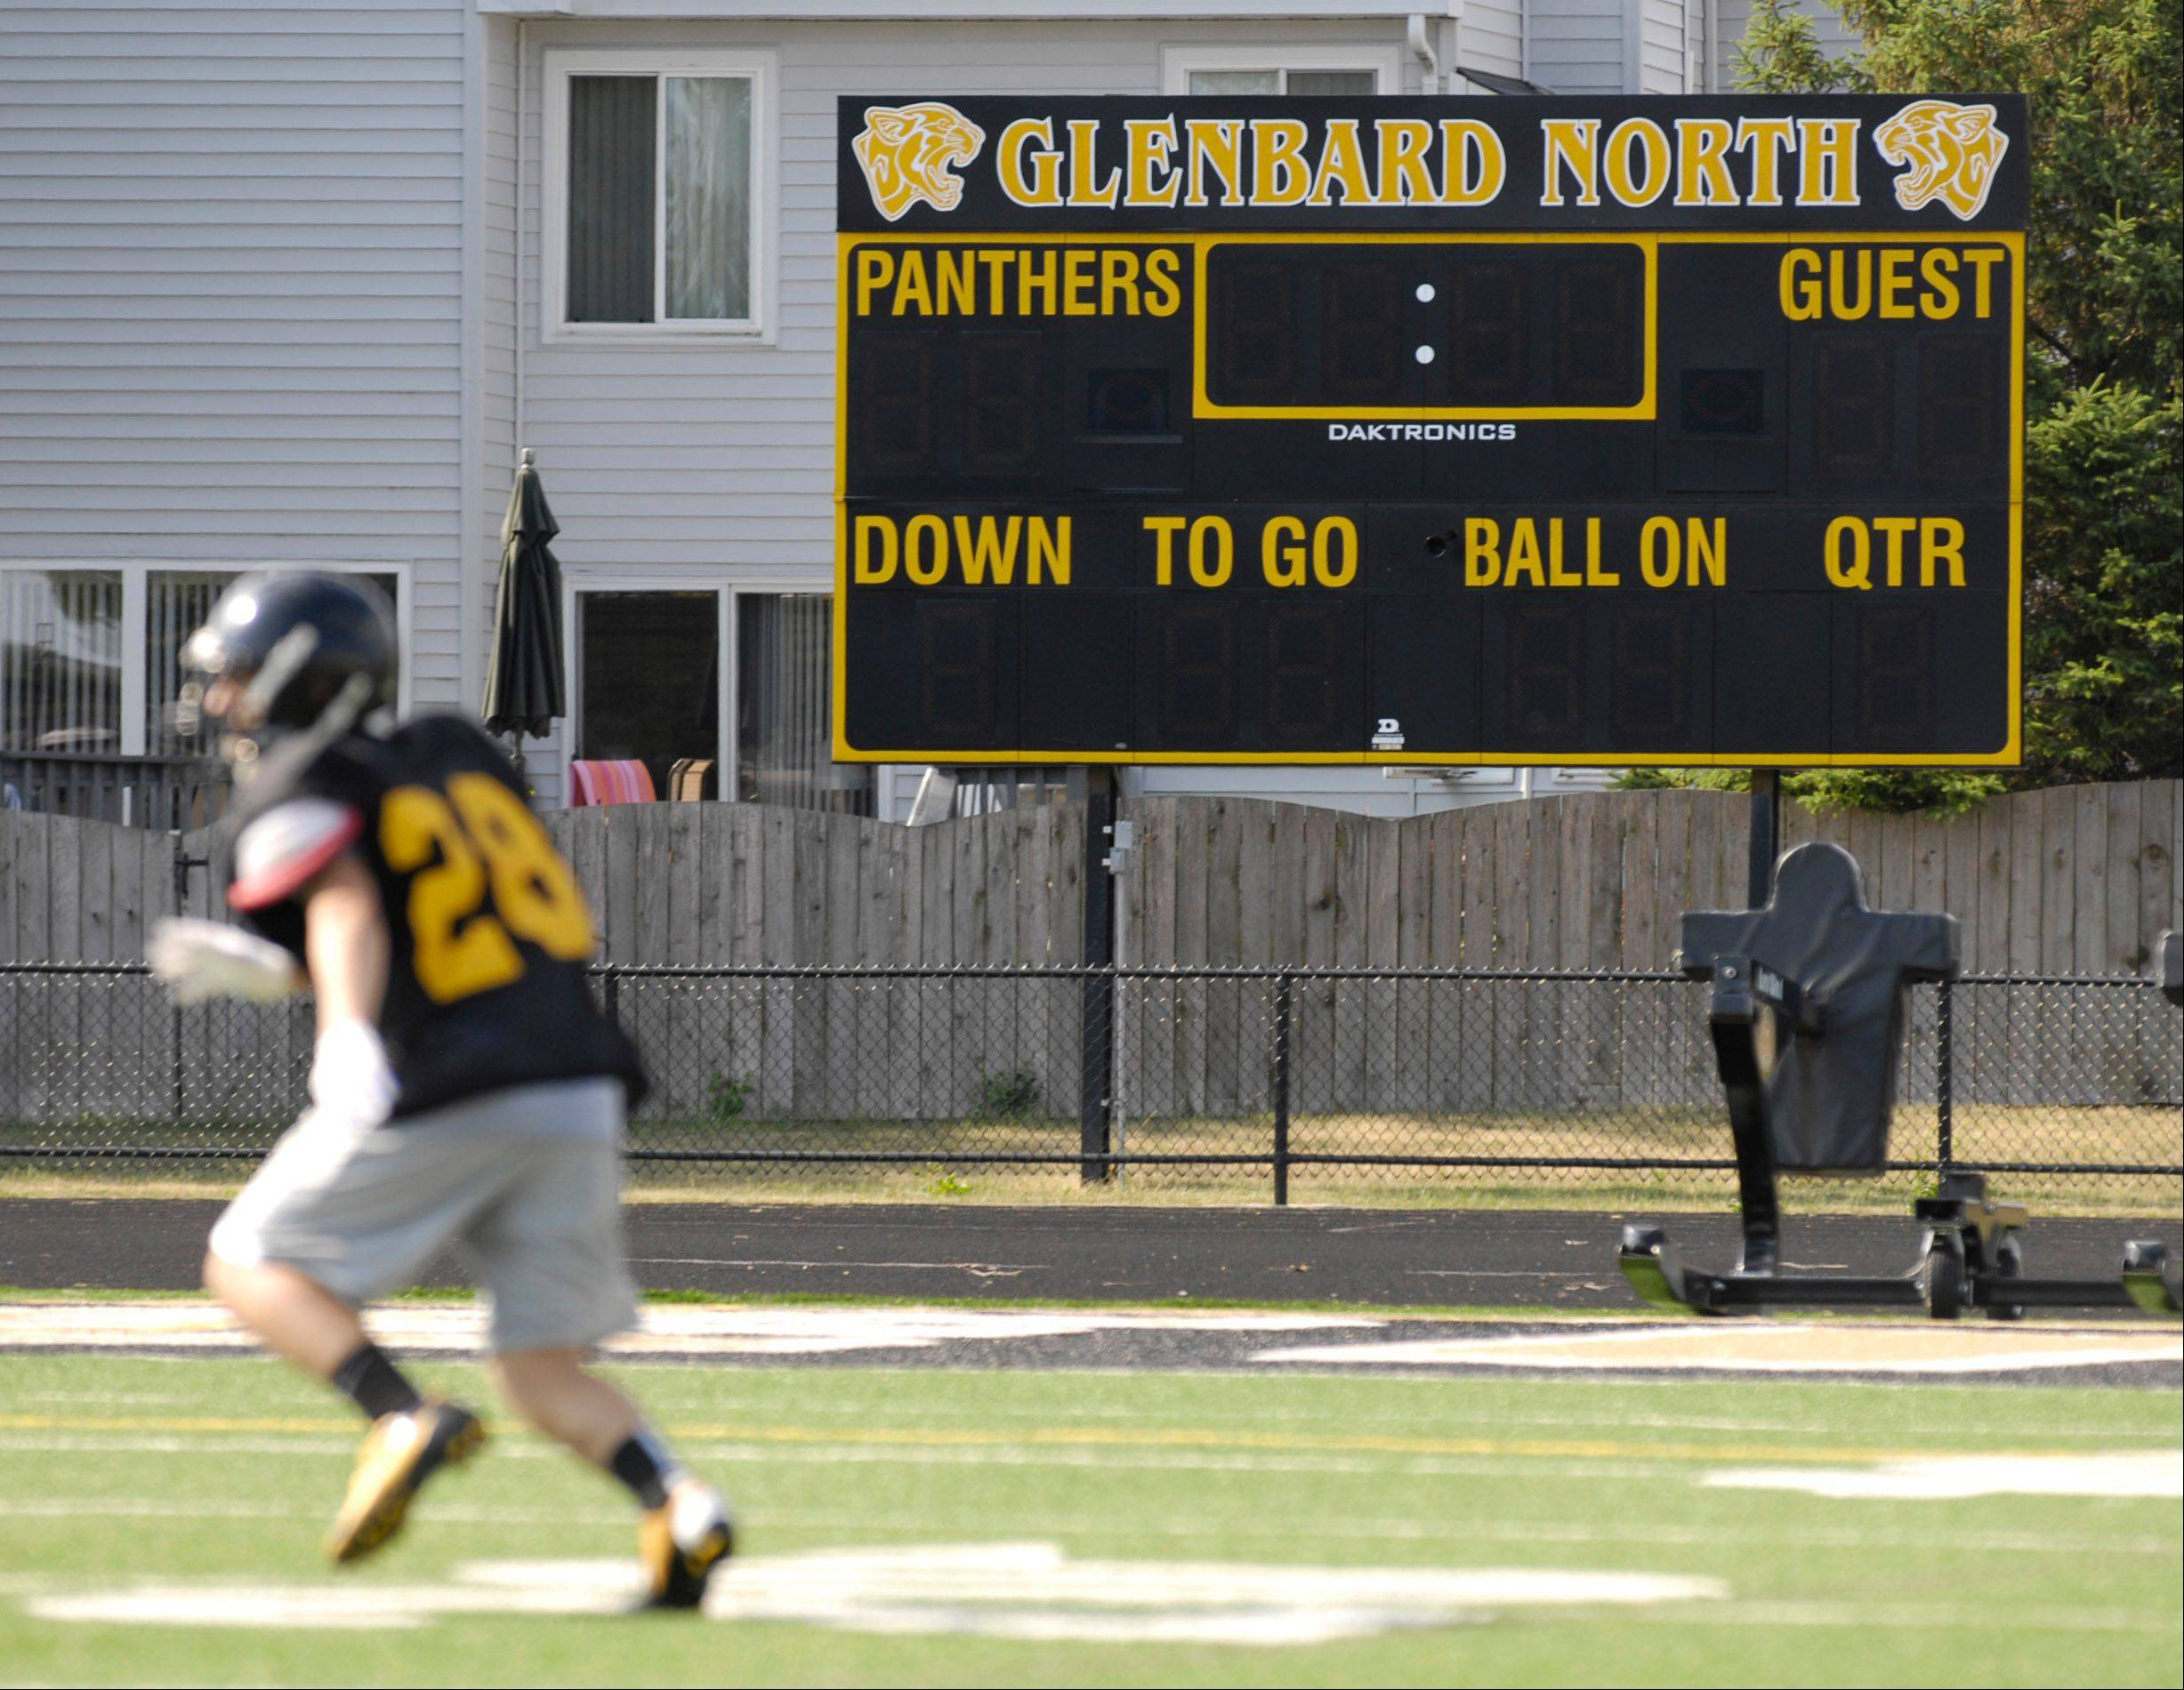 An agreement has fallen through with a firm that would have brought advertising to scoreboards at Glenbard District 87 high schools, officials said.